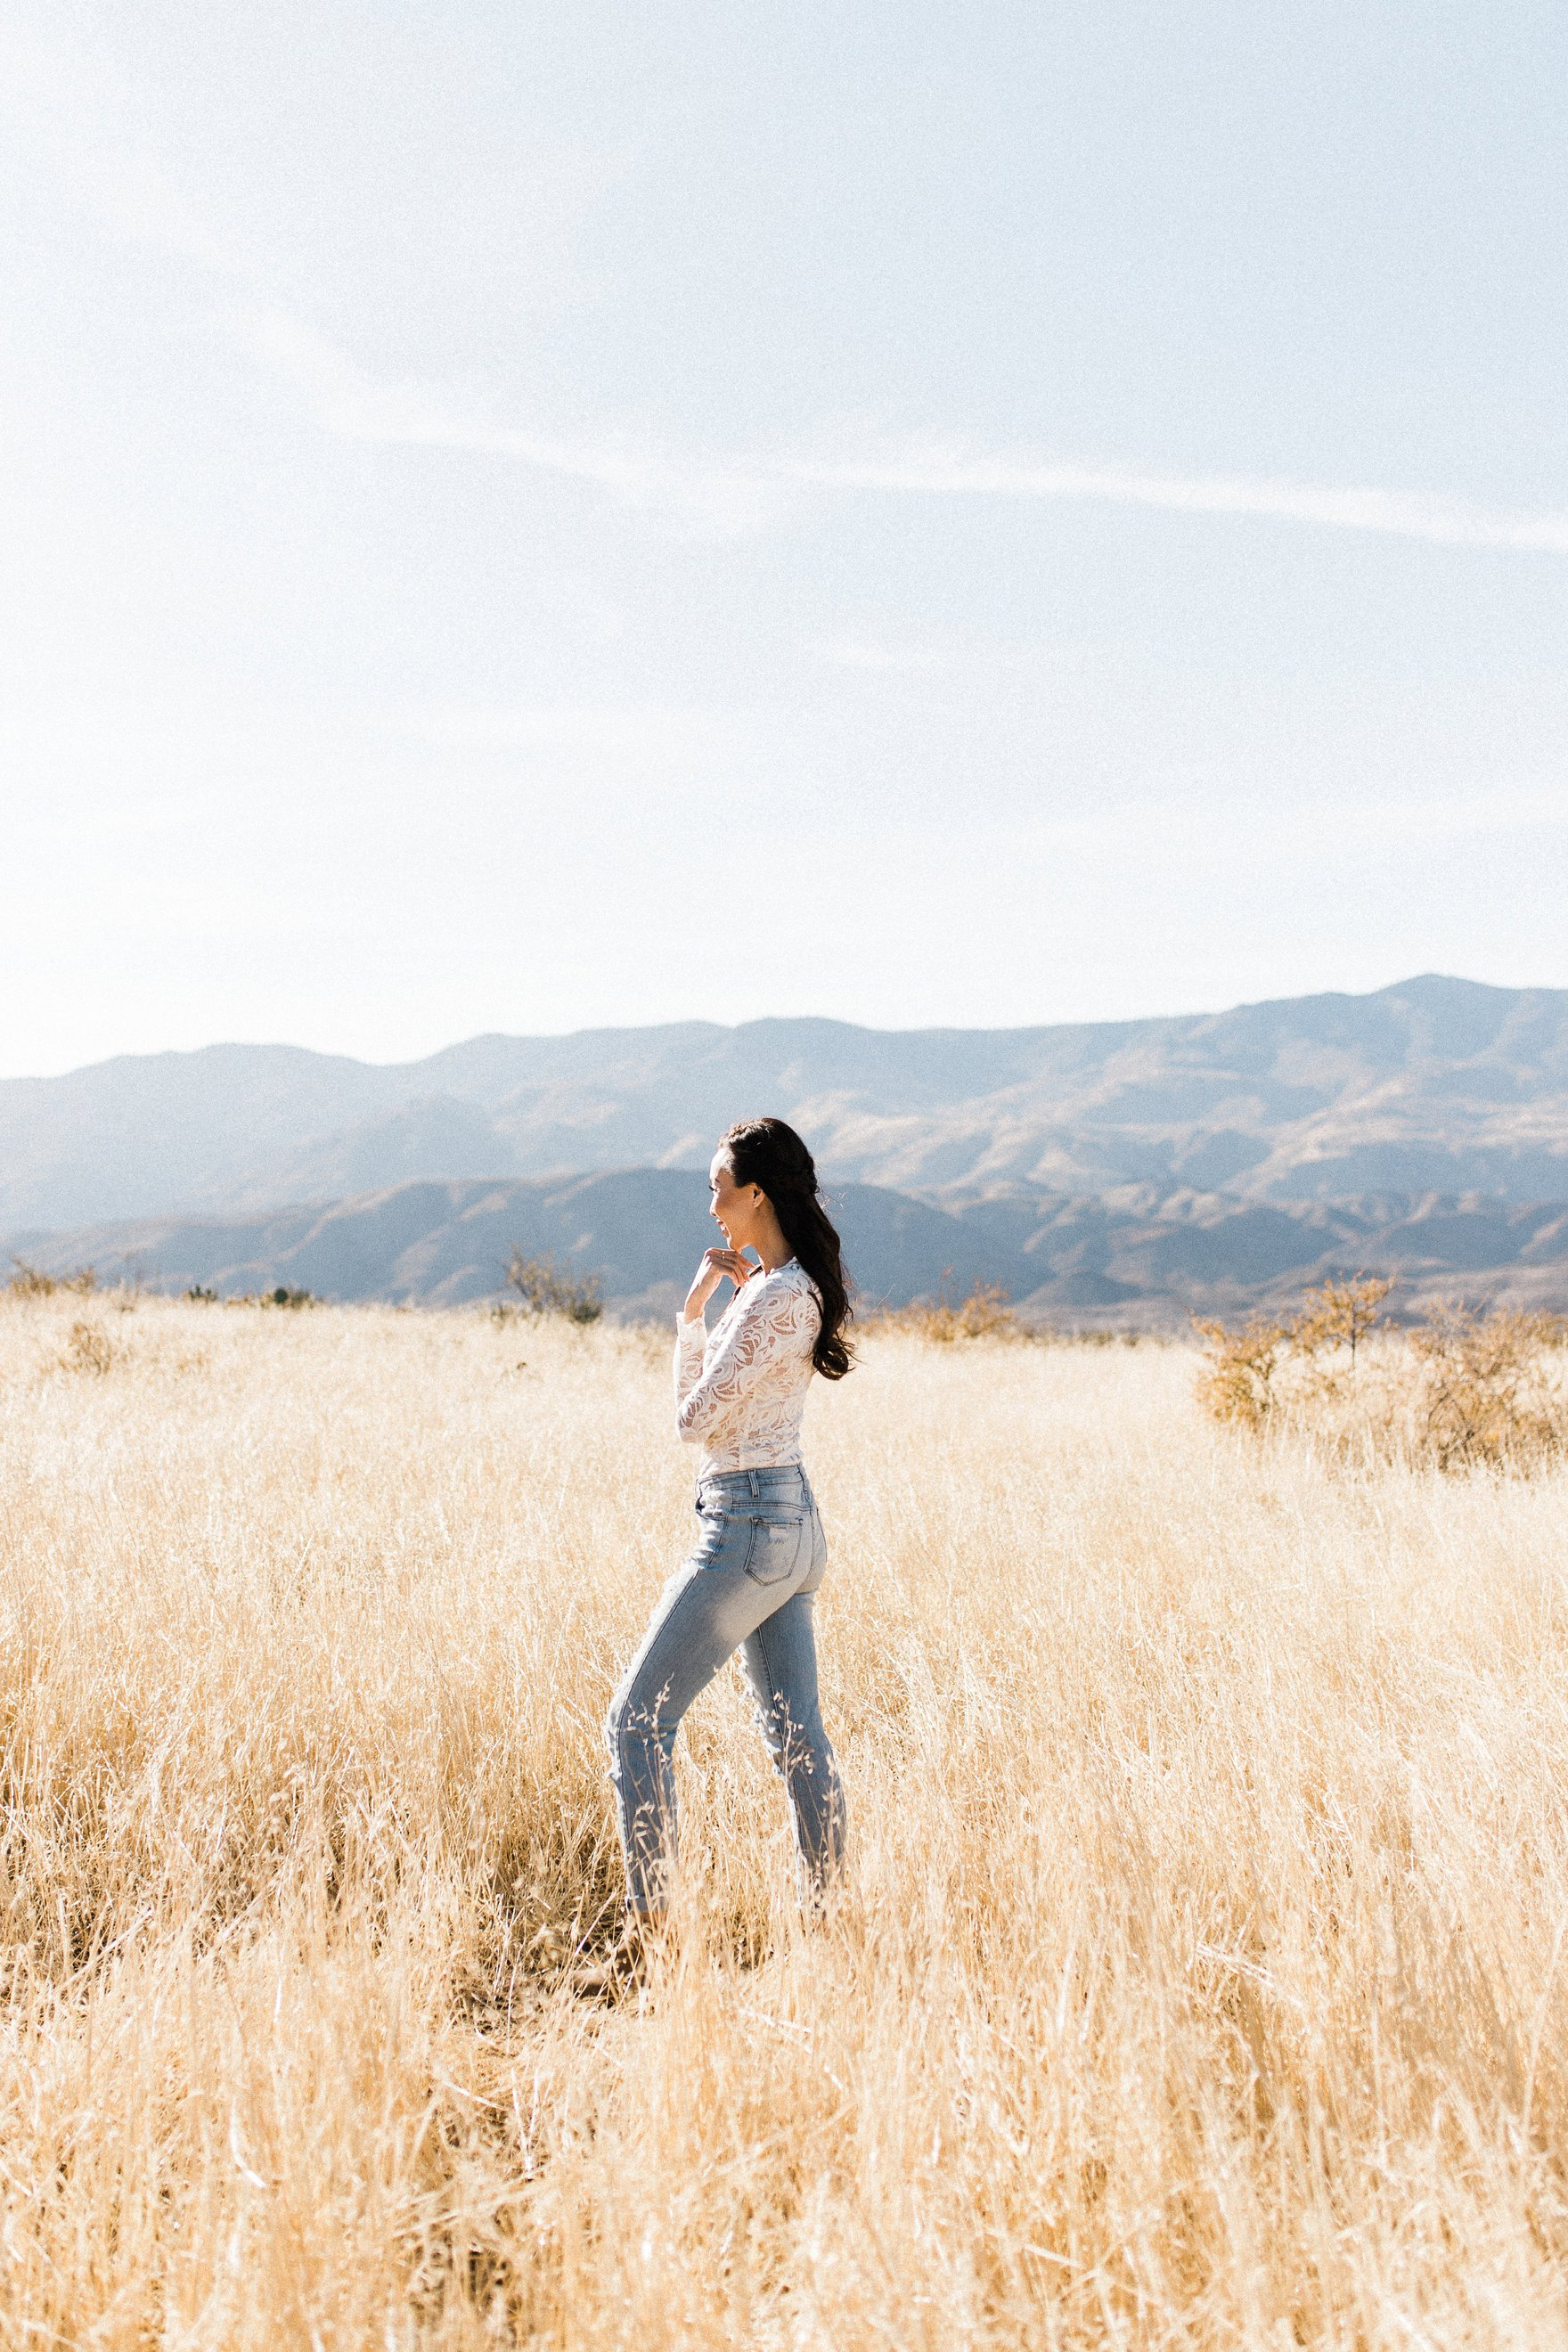 wind in hair white lace bodysuit high waist ripped jeans in a field Diana Elizabeth blogger photography by Autumn Renae Wide angle phoenix arizona